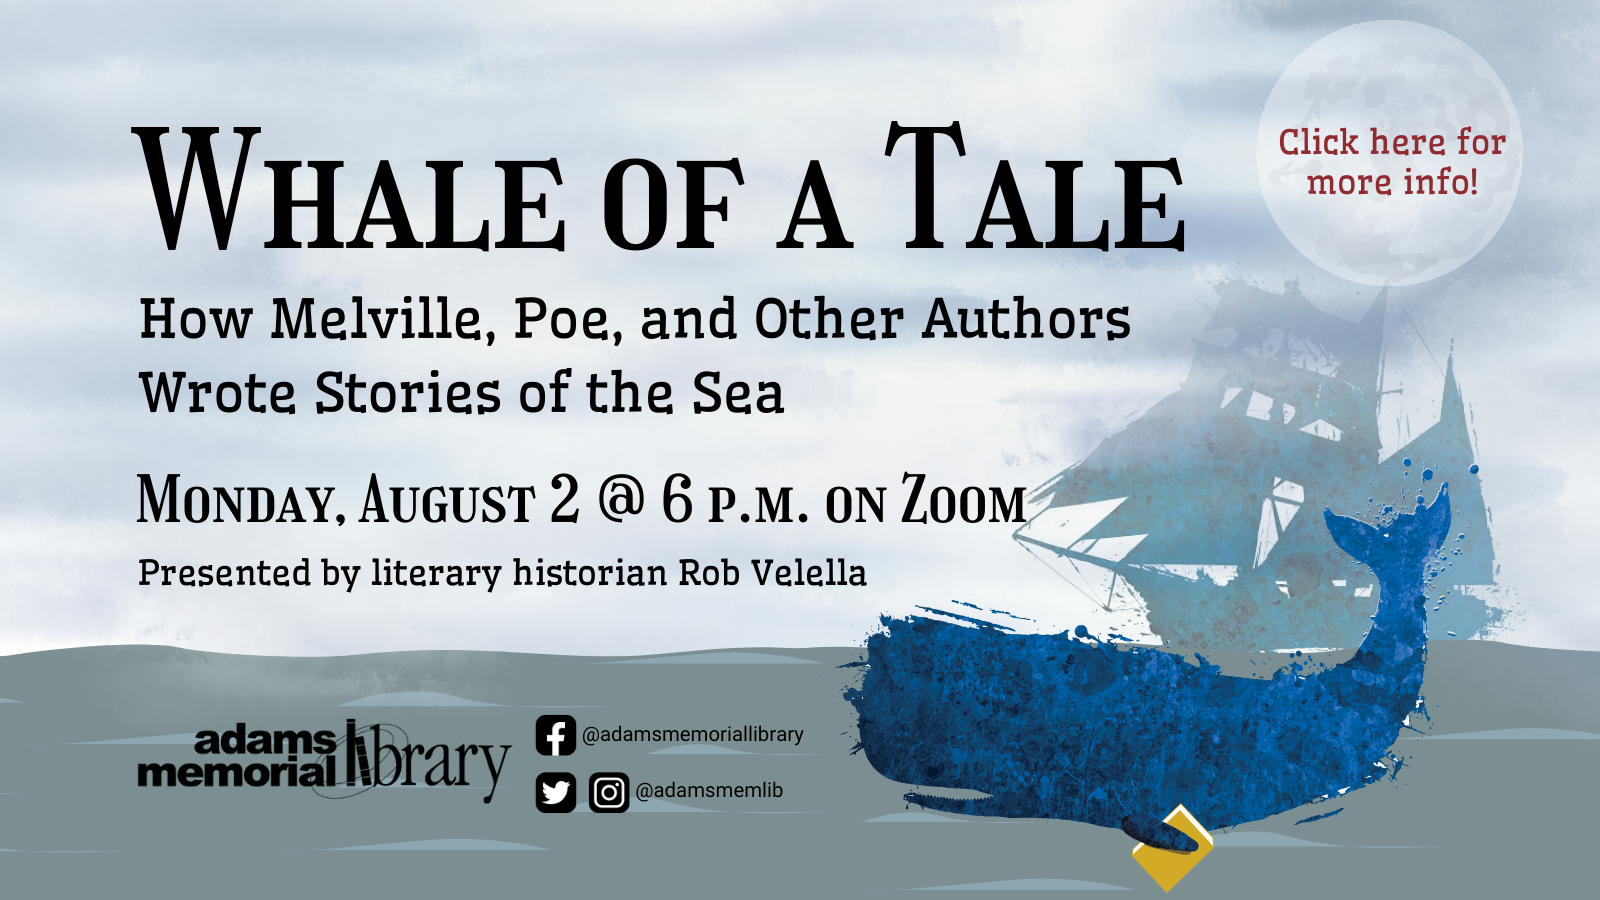 Whale of a Tale program.  Click here for more details!